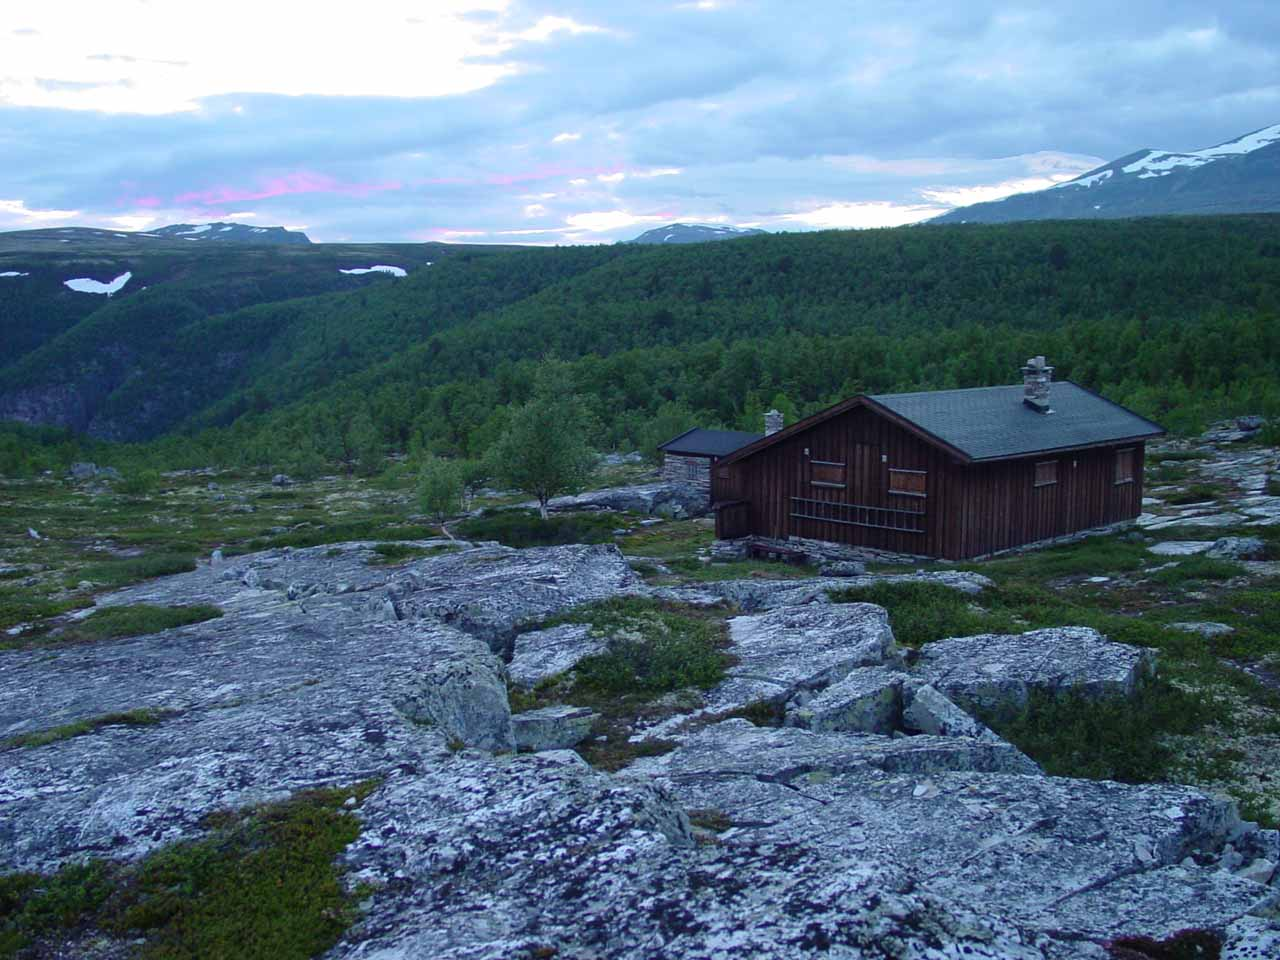 This was either the last or the next-to-last cabin I saw while hiking on the Peer Gynt Trail